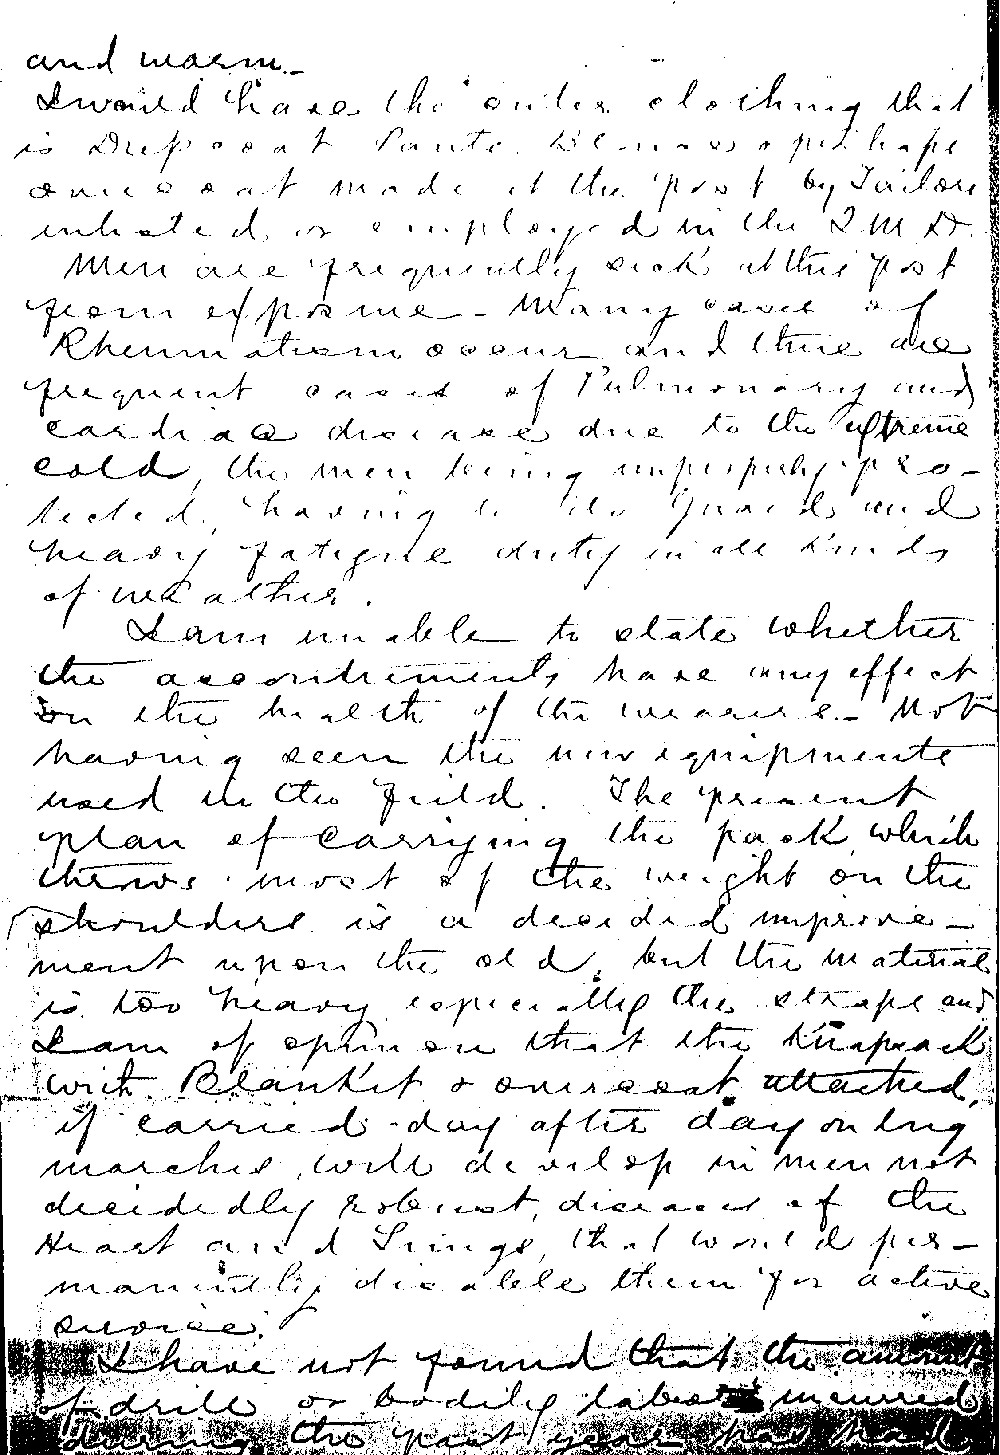 Officers took seriously their duty to oversee the well-being of the soldiers. The condition of enlisted men's clothing at Fort Buford was not acceptable to the post surgeon who wrote up this report. Though complaining about conditions was common among all soldiers, one of the few places where an official complaint was acceptable was in a report concerning the welfare of the soldiers.